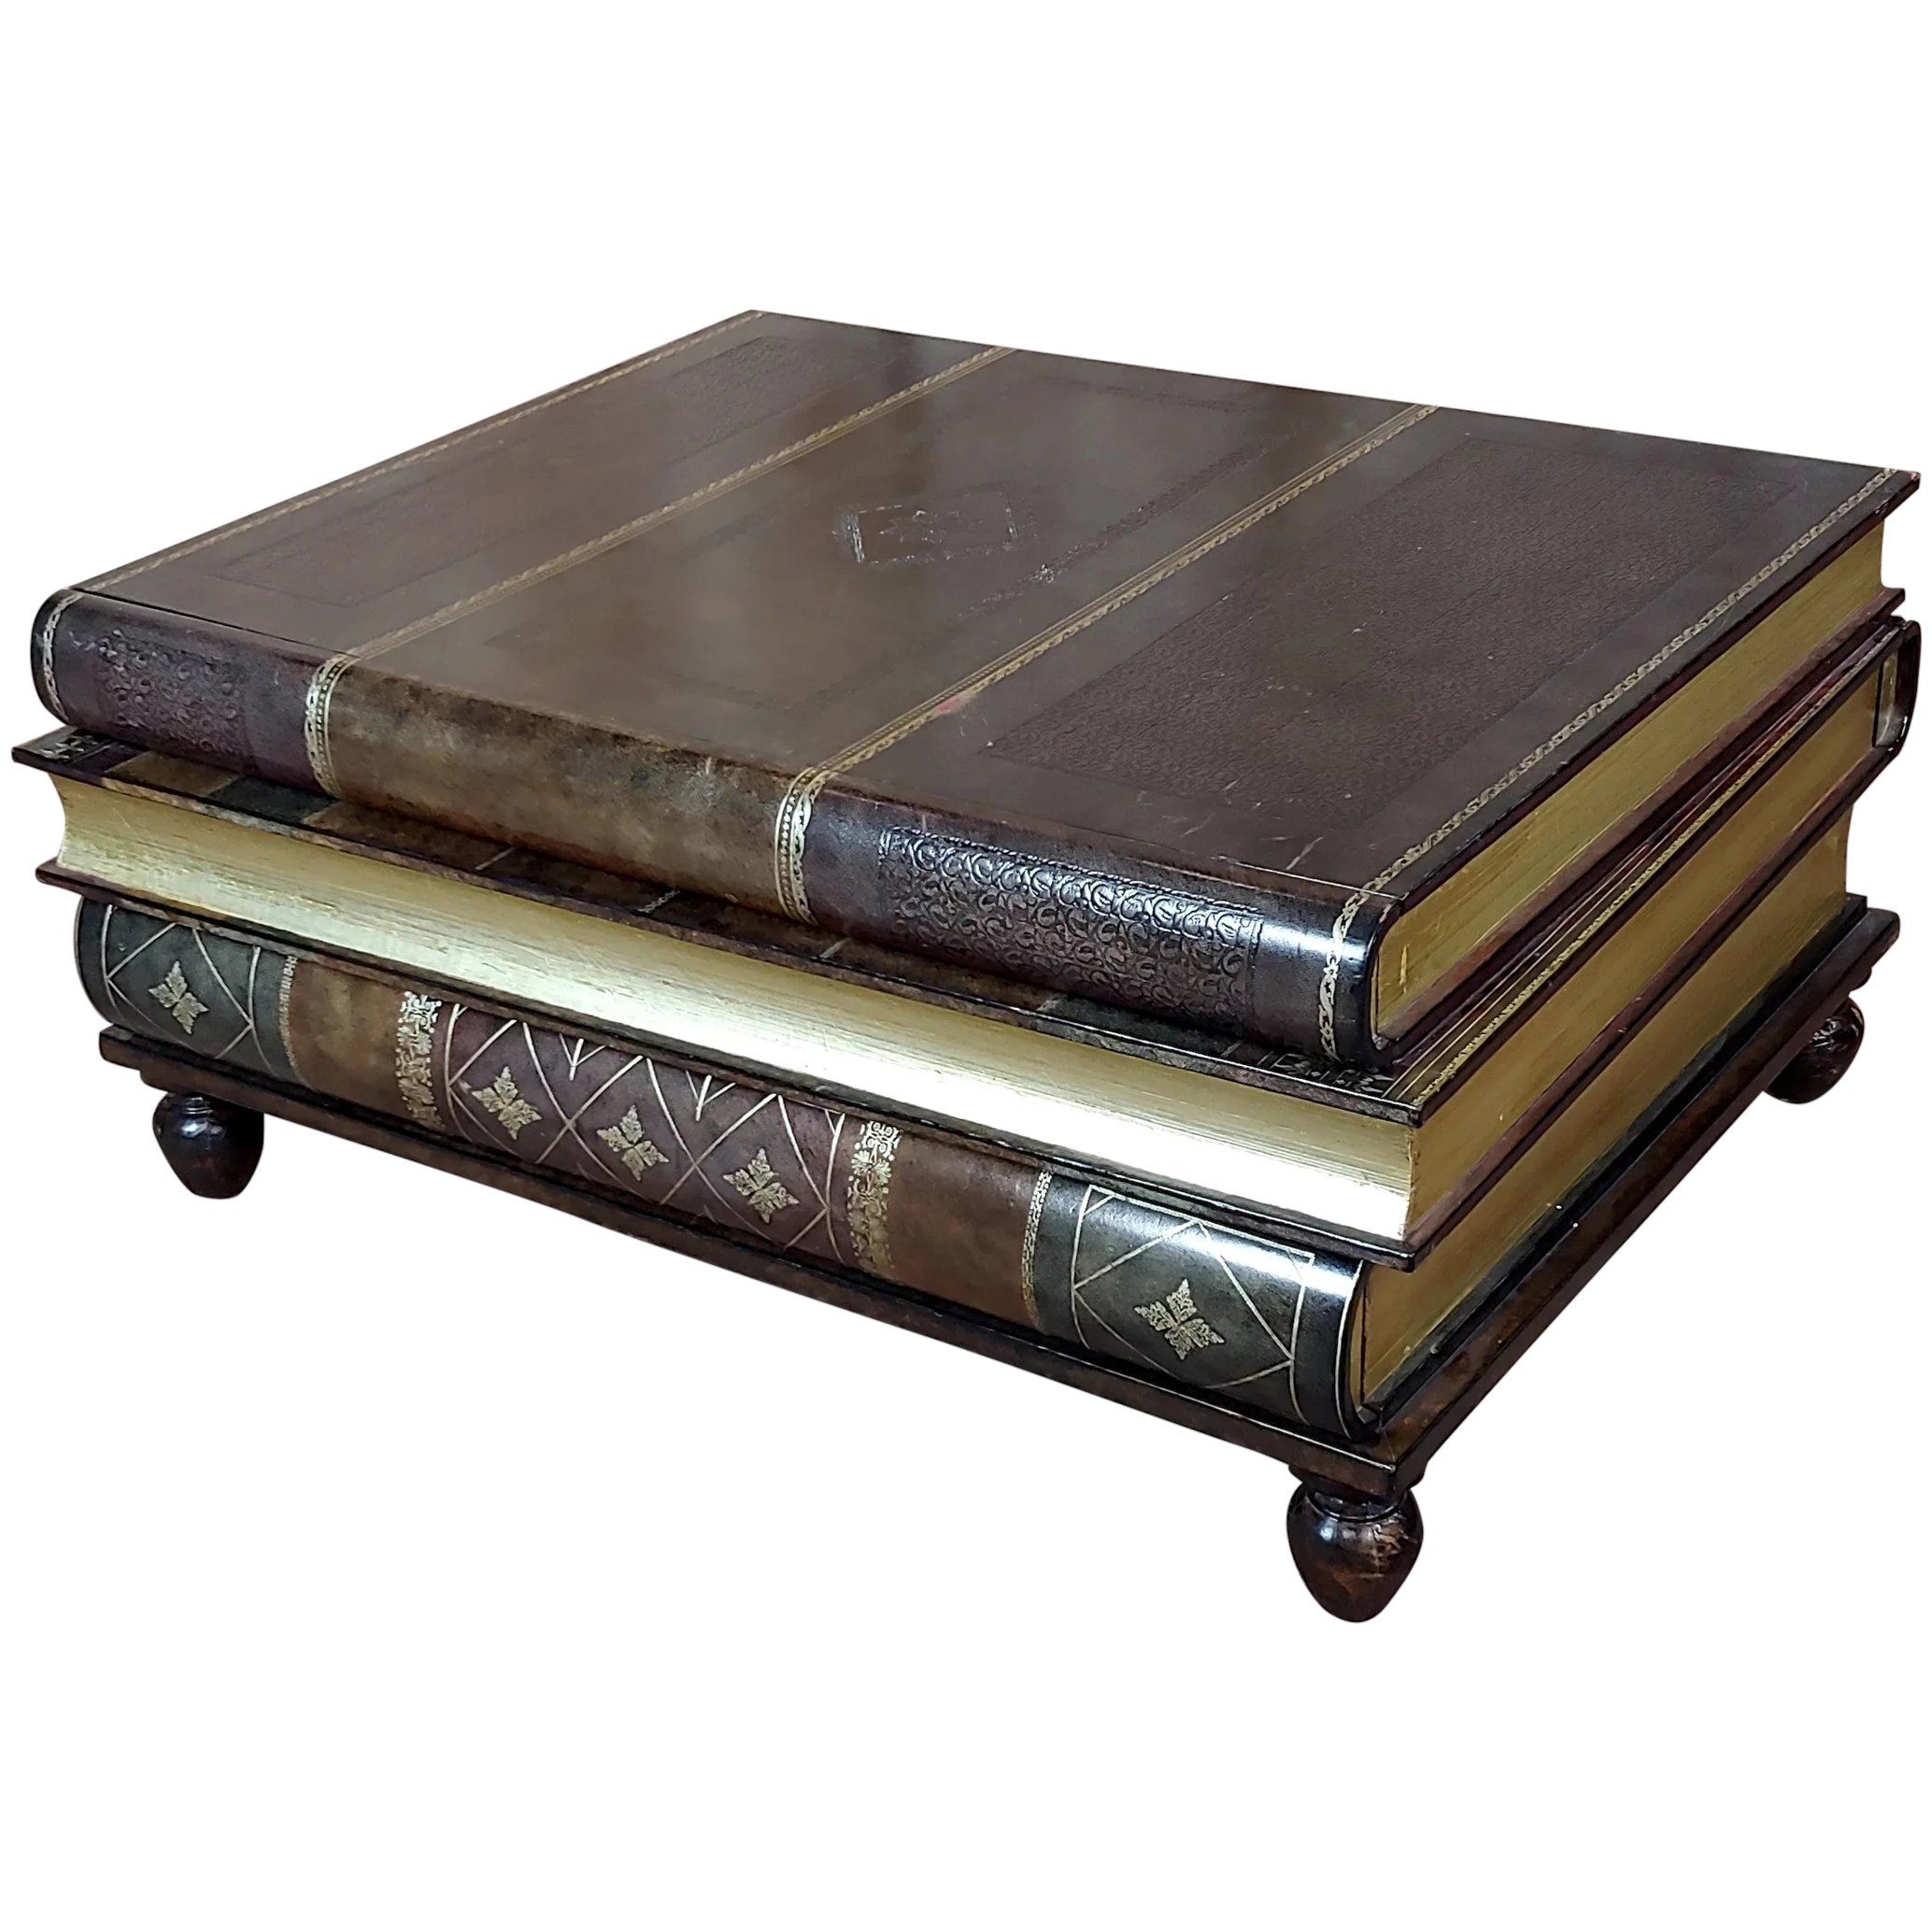 Maitland Smith Stacked Leather Books Form Coffee Table